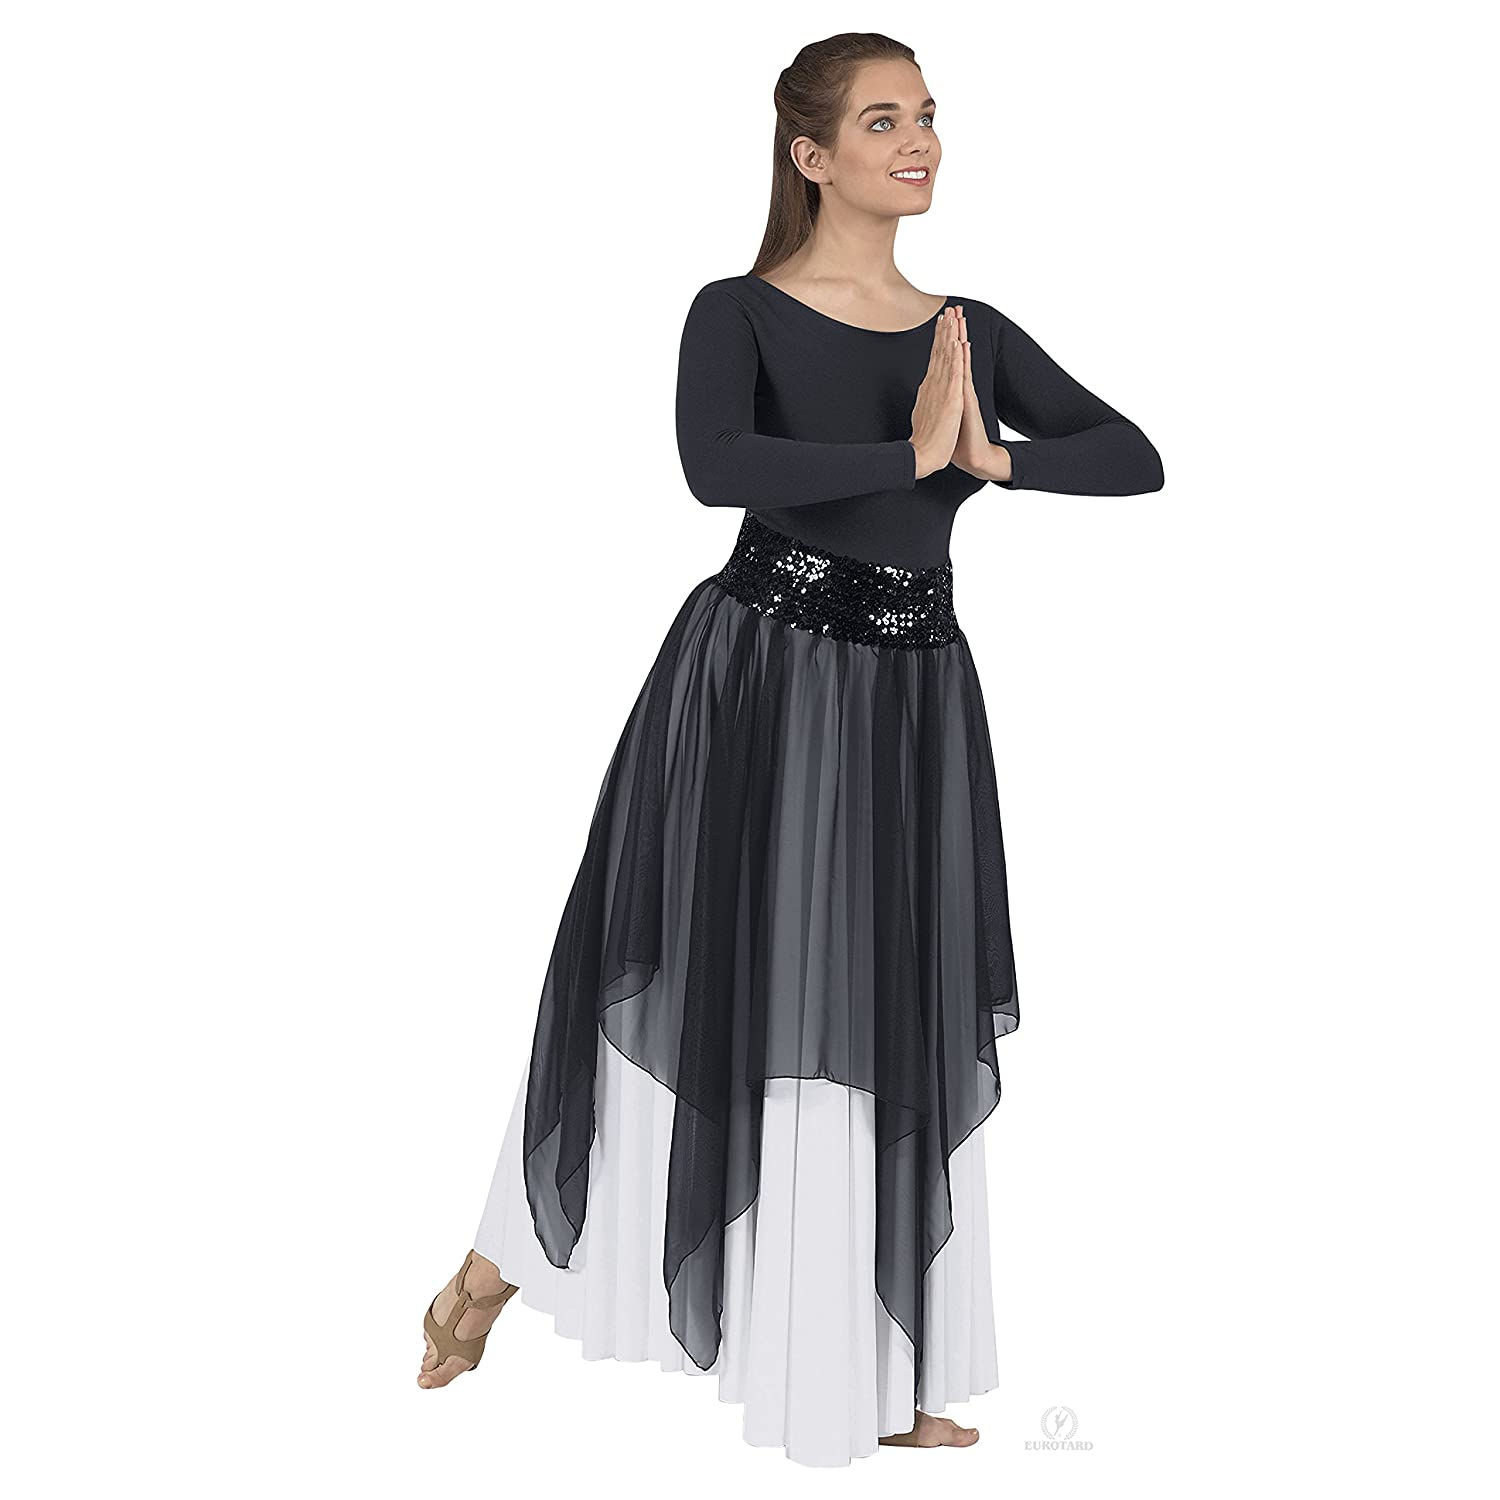 Single Chiffon Handkerchief Skirt/Top